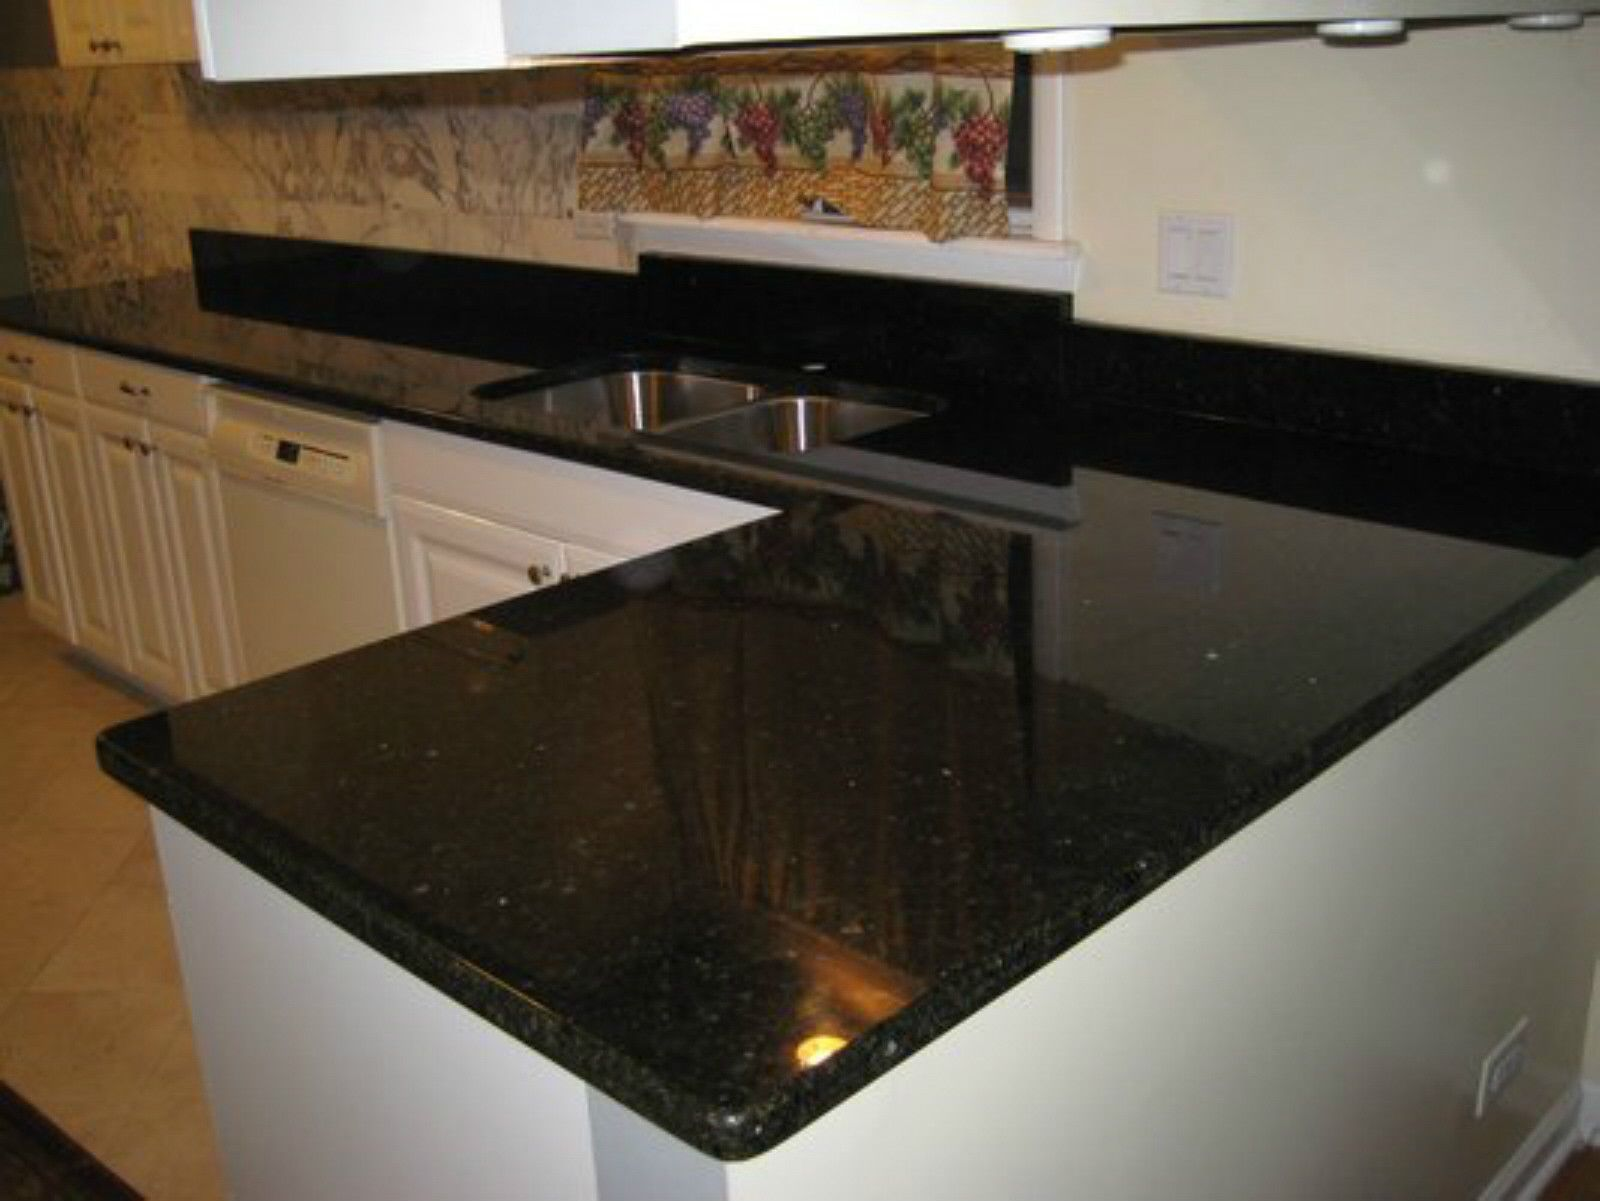 Diy Peel N Stick Black Countertop Cover Film Contact Paper Overlay Sicker 12ft Countertops Countertop Covers Faux Granite